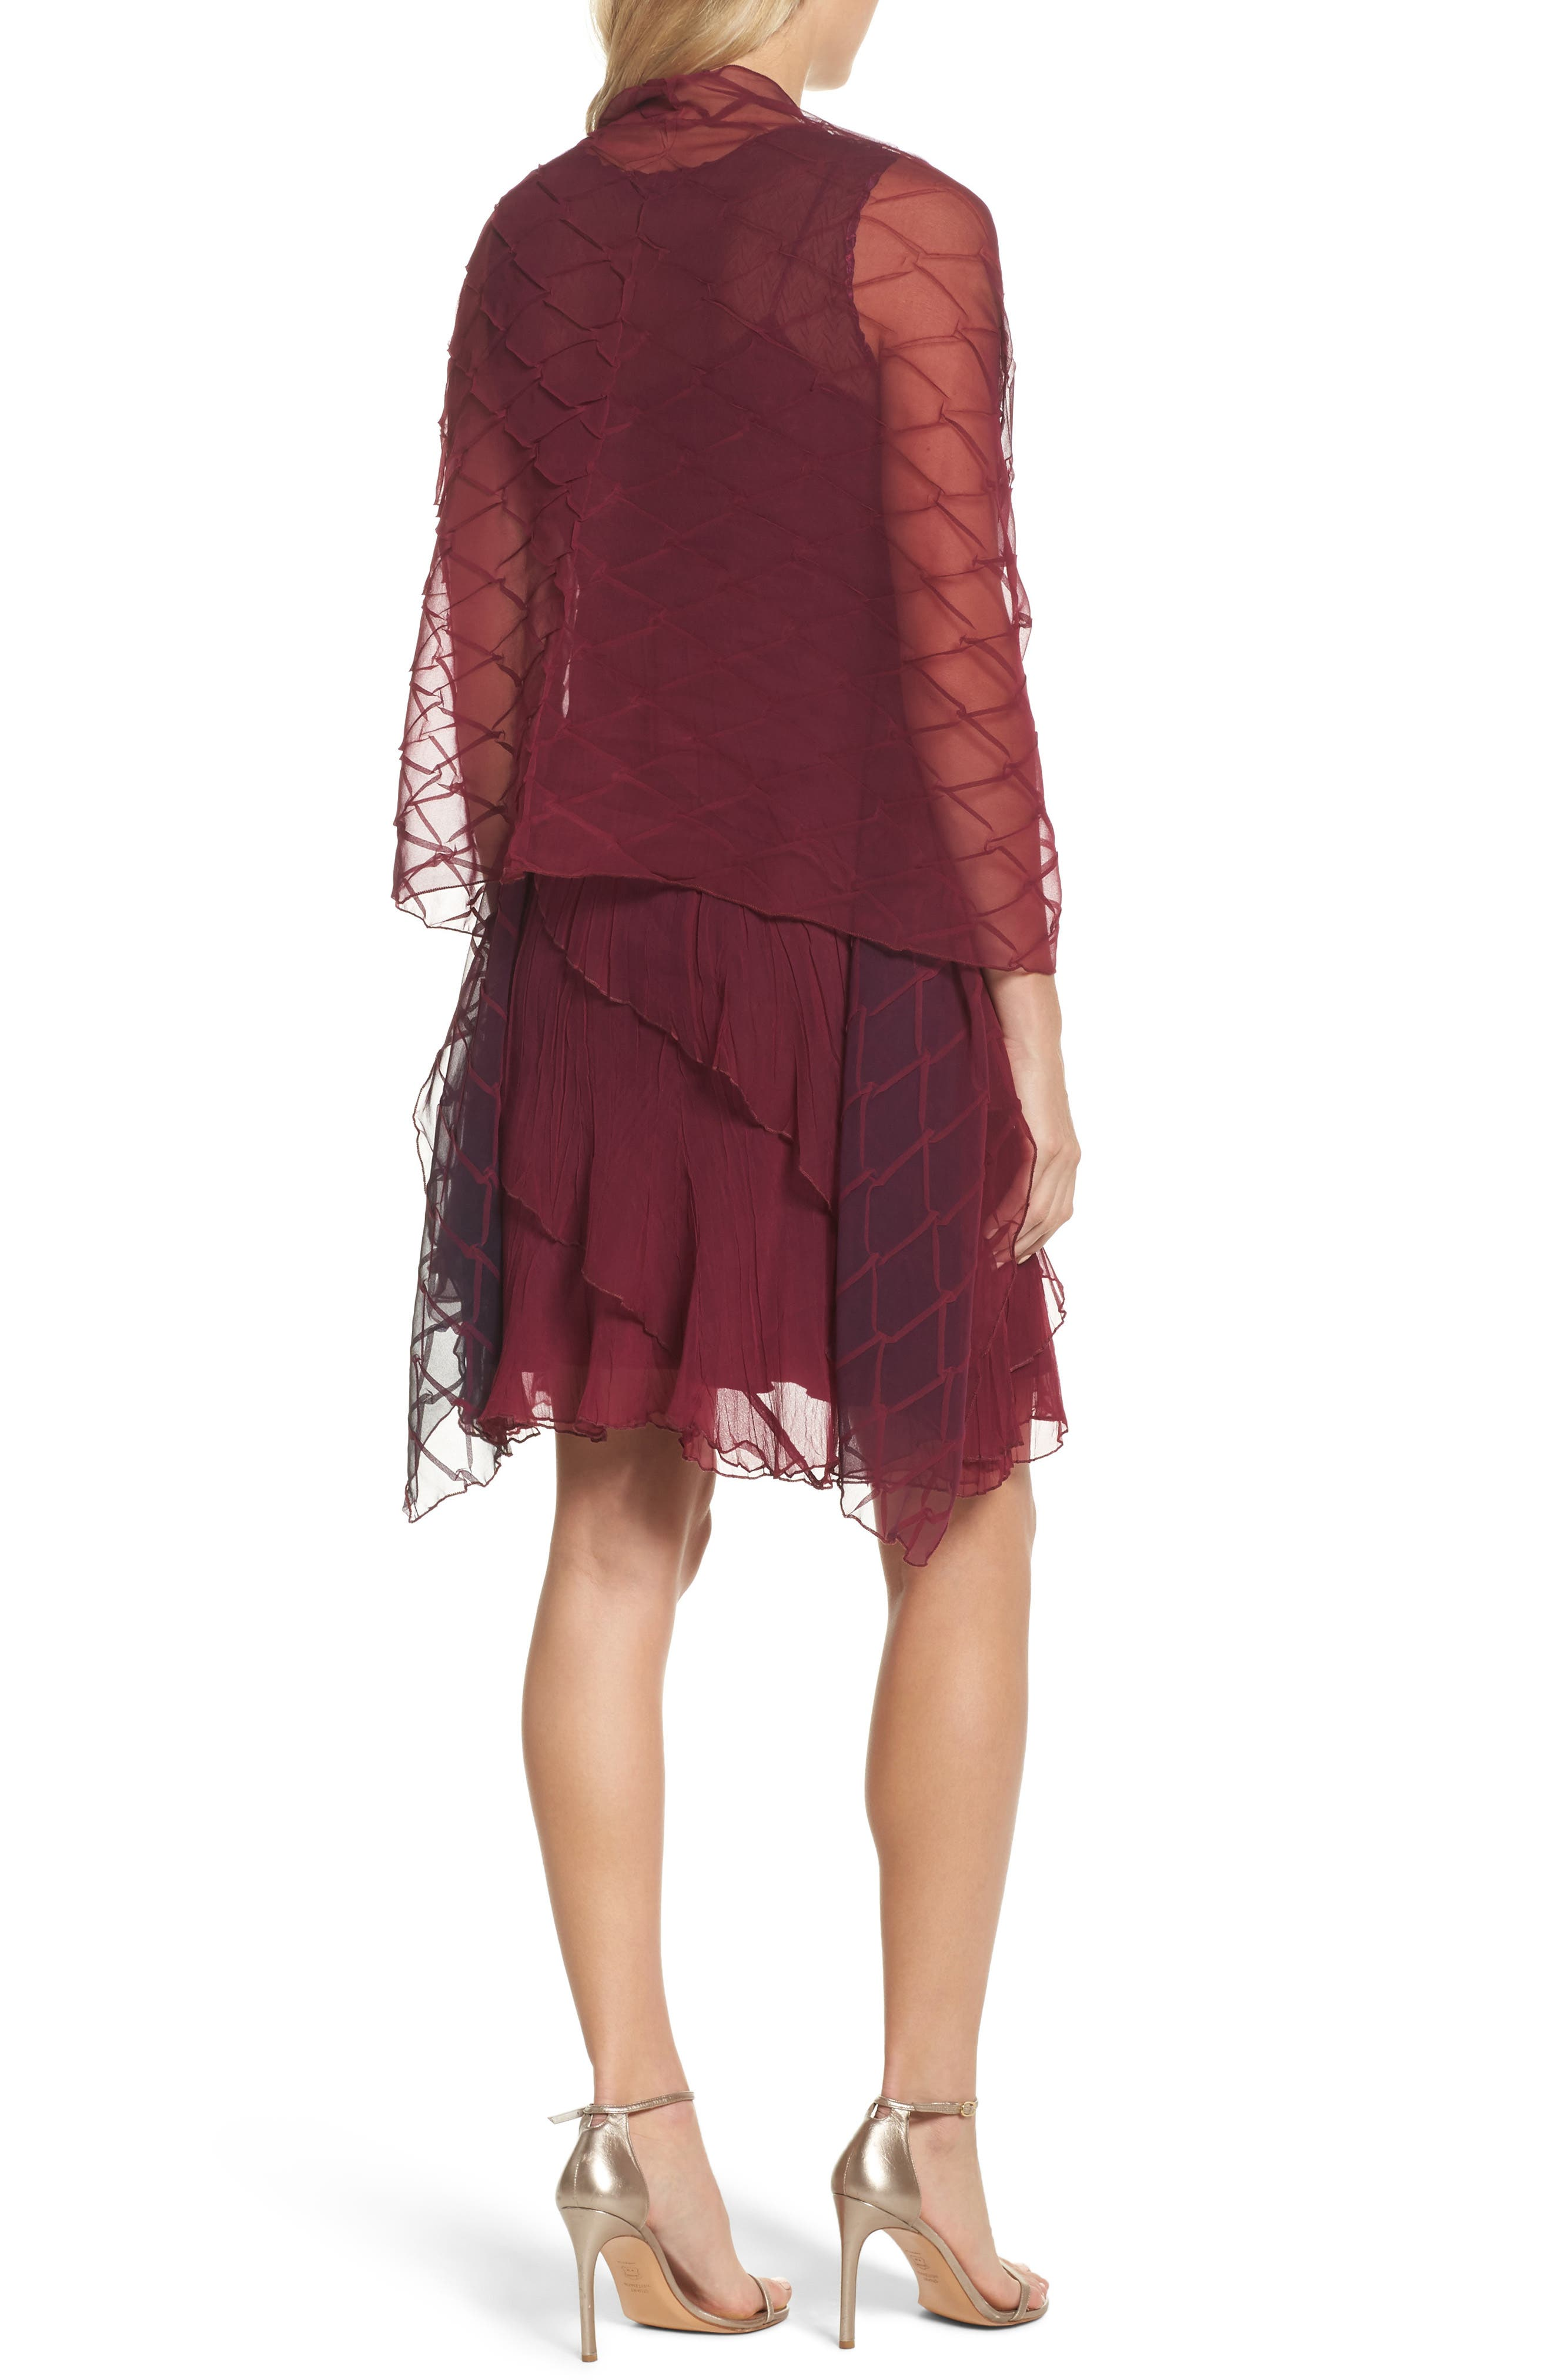 Tiered A-Line Dress with Shawl,                             Alternate thumbnail 2, color,                             Red Plum Night